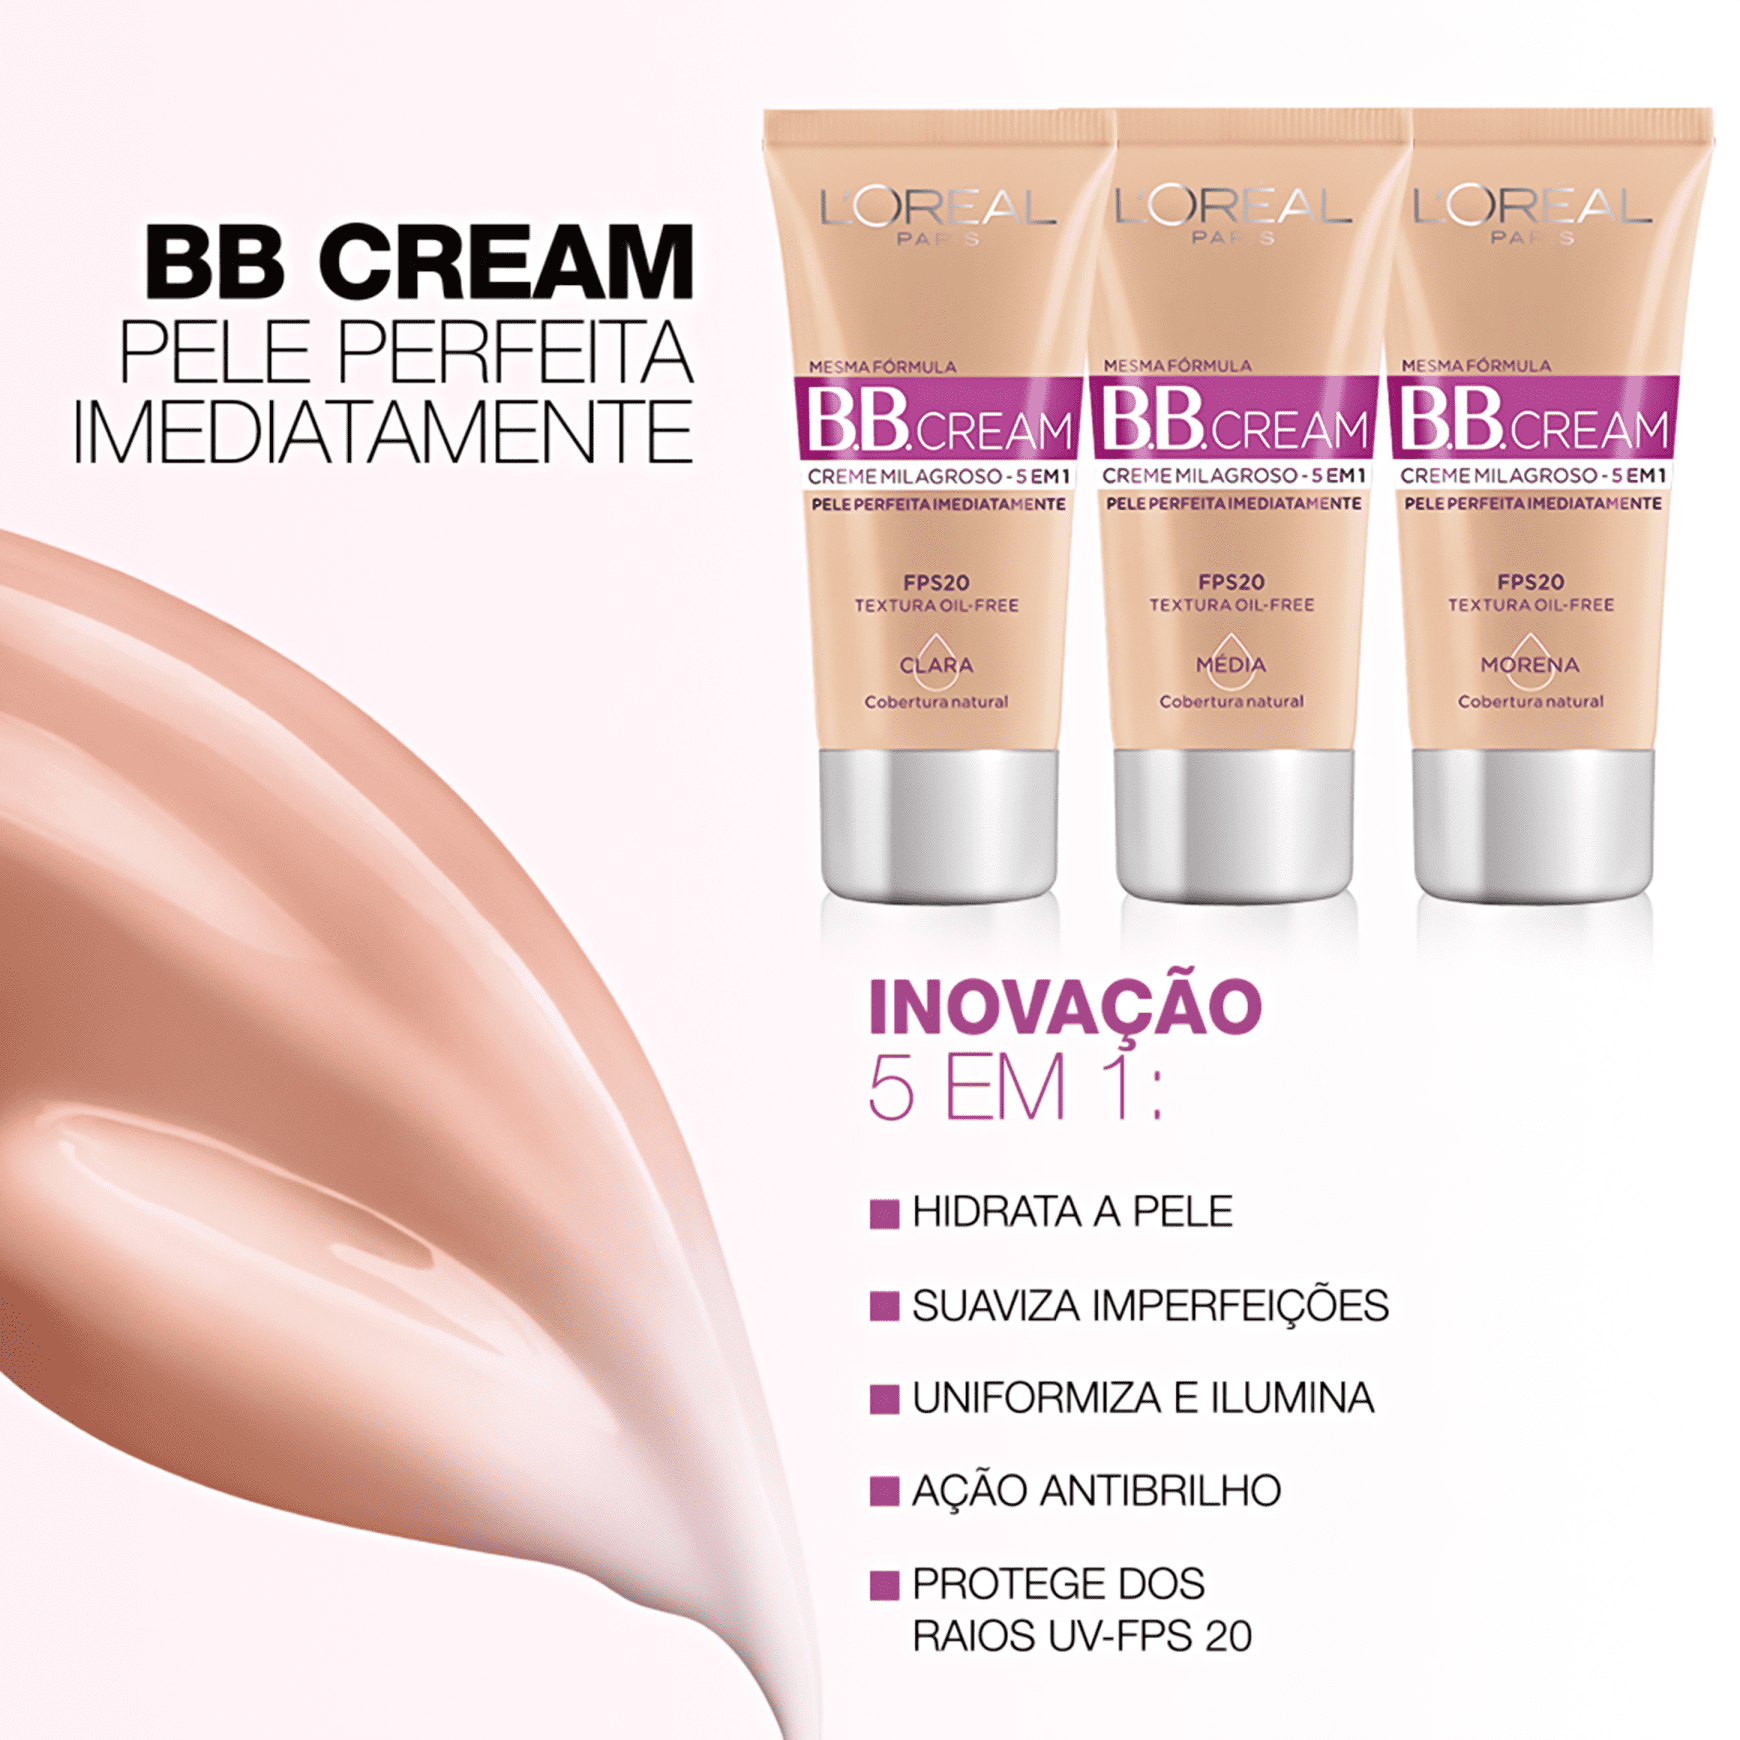 BB Cream 5 em 1 Loreal Paris